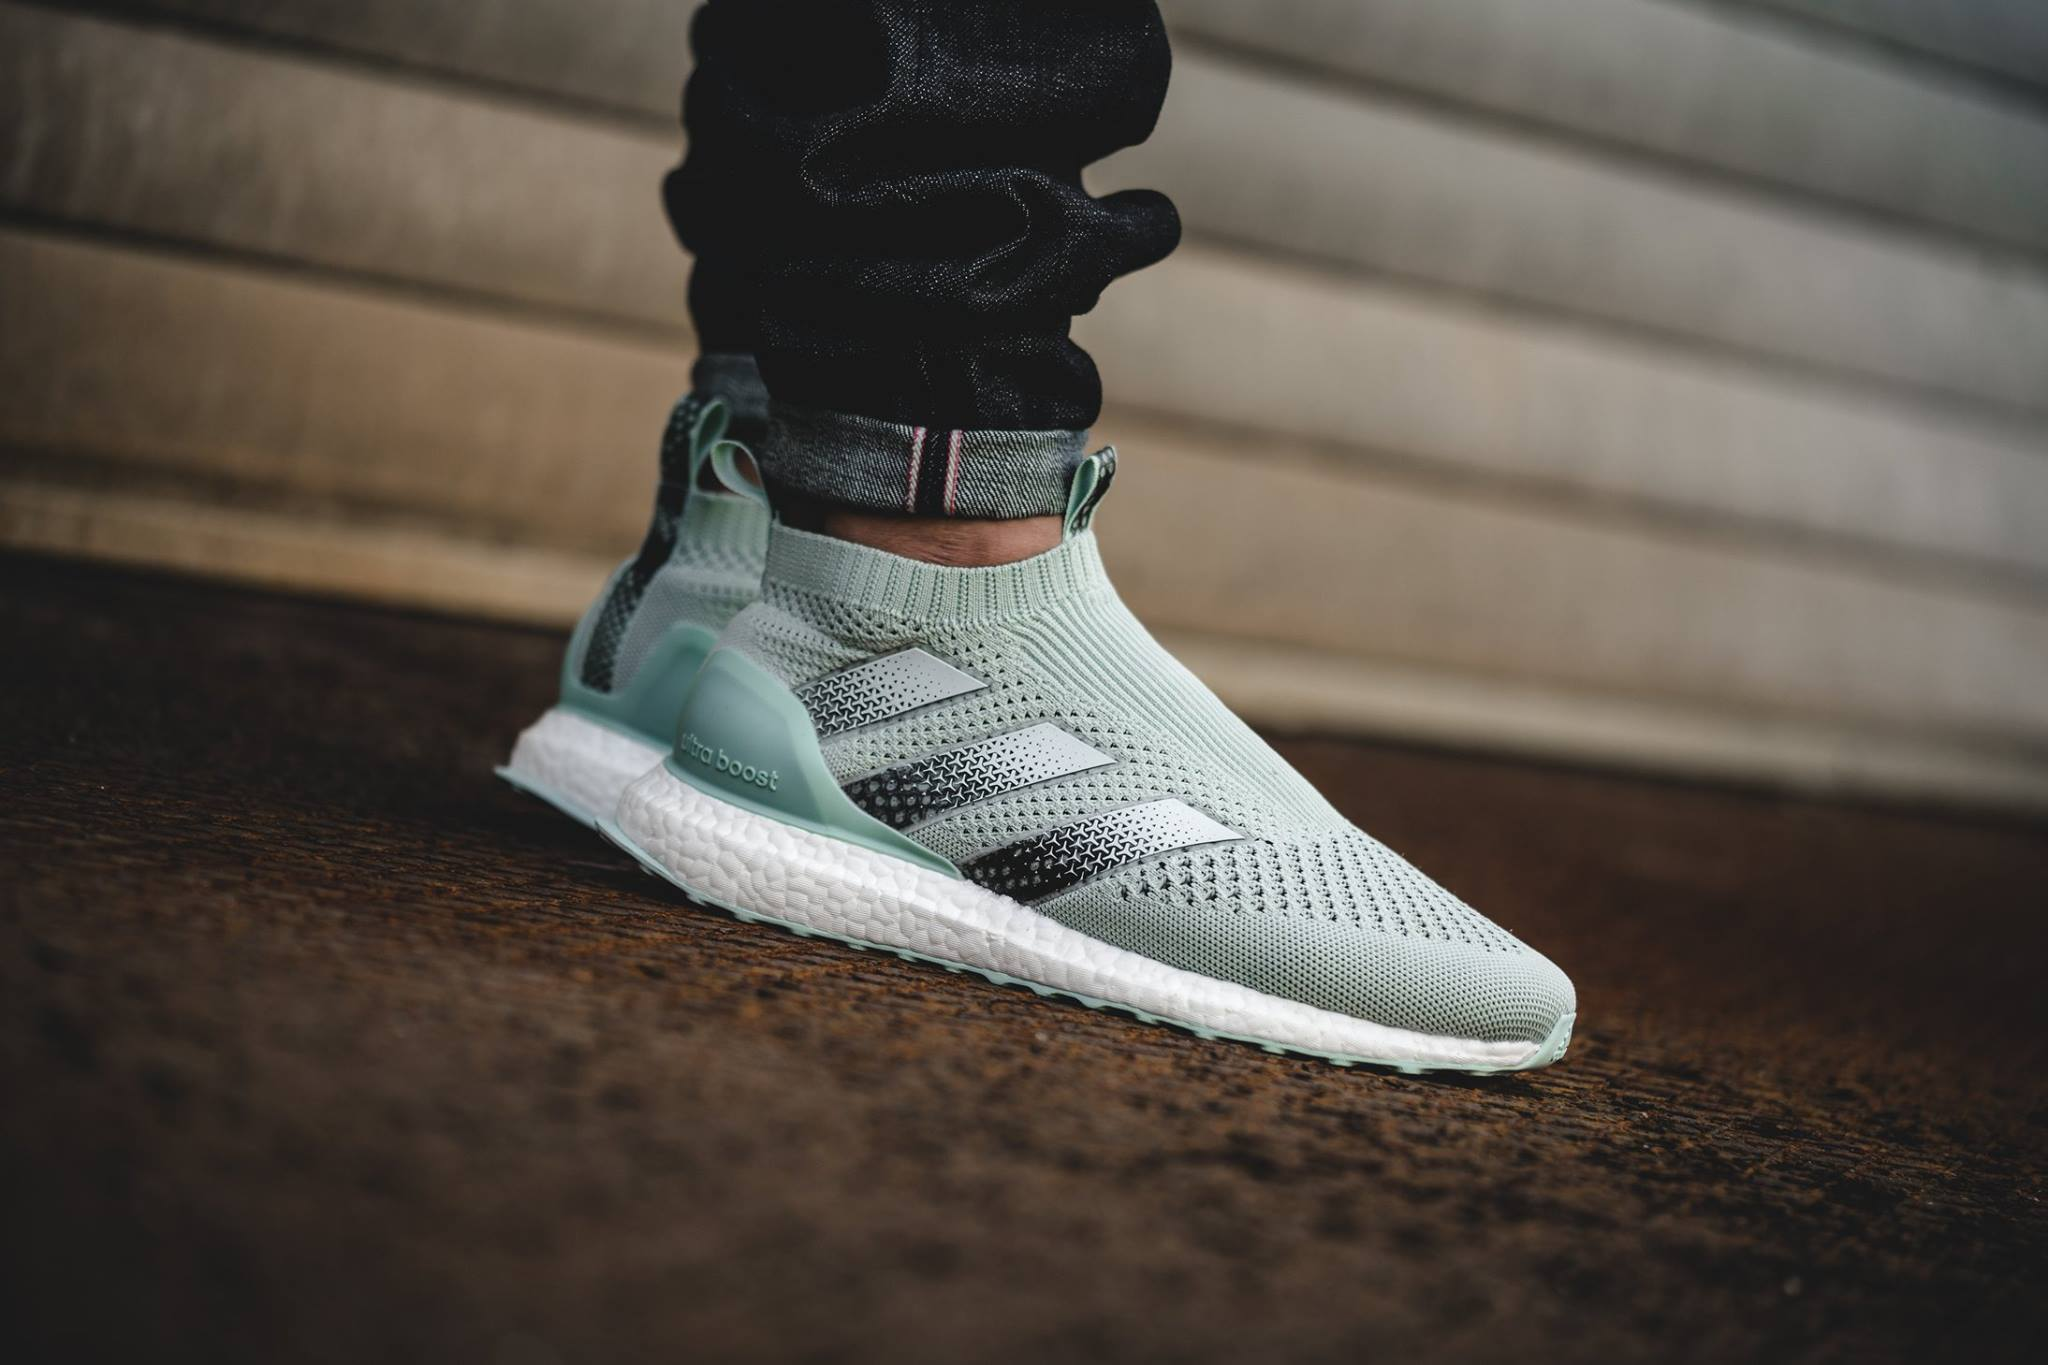 Adidas Ace 16+ Ultra Boost